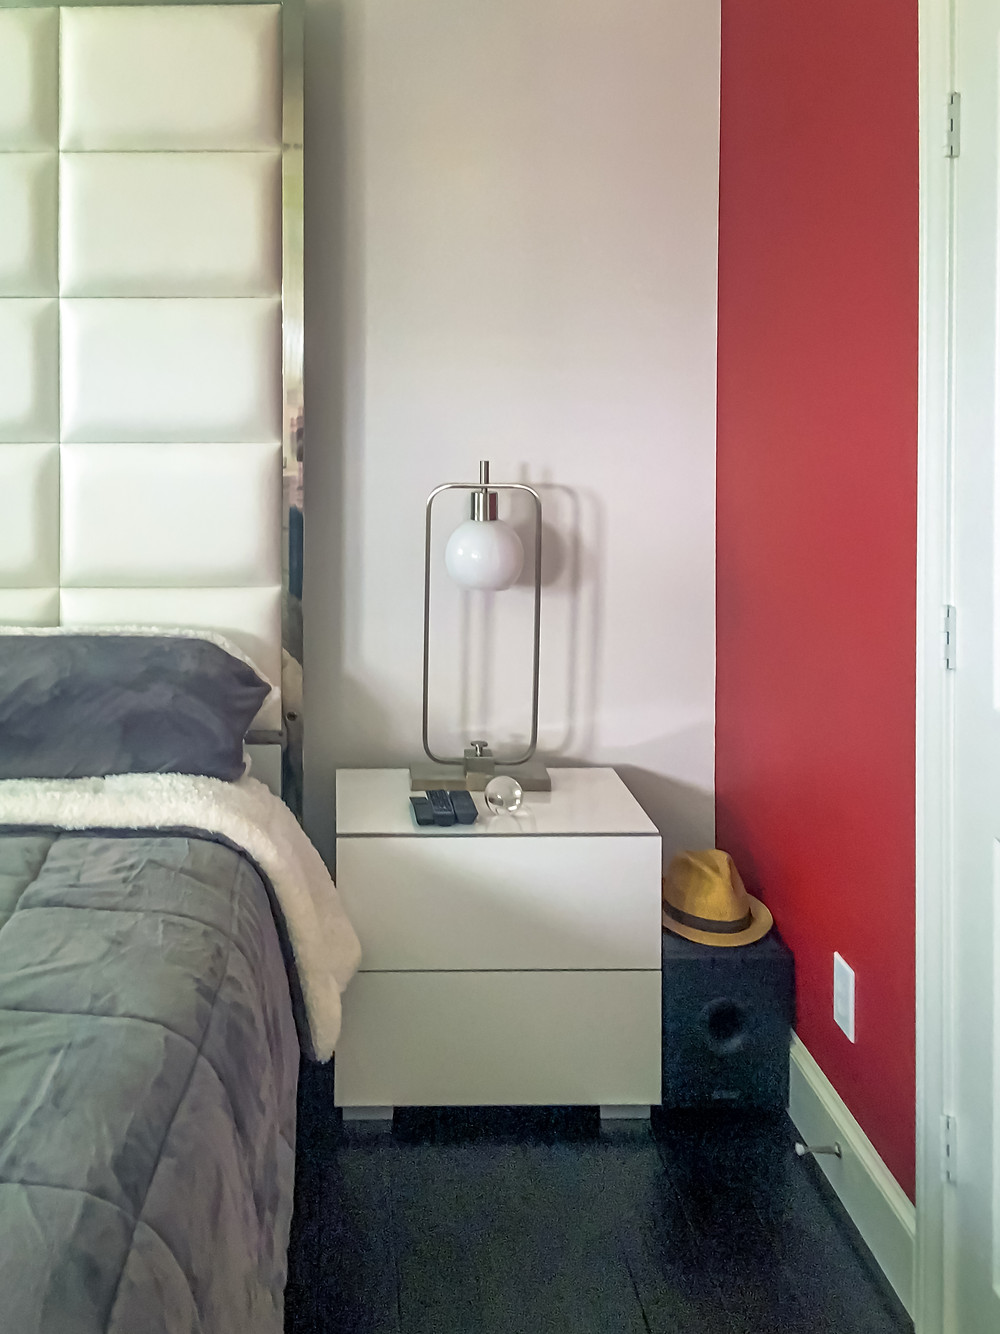 Master bedroom suite with tall, white upholstered bed, gray and white bedding, high-gloss white nightstand, round lampshade with nickel steel base table lamp, and accessorized with small glass globe. This bedroom has dark wood flooring and red accent wall.